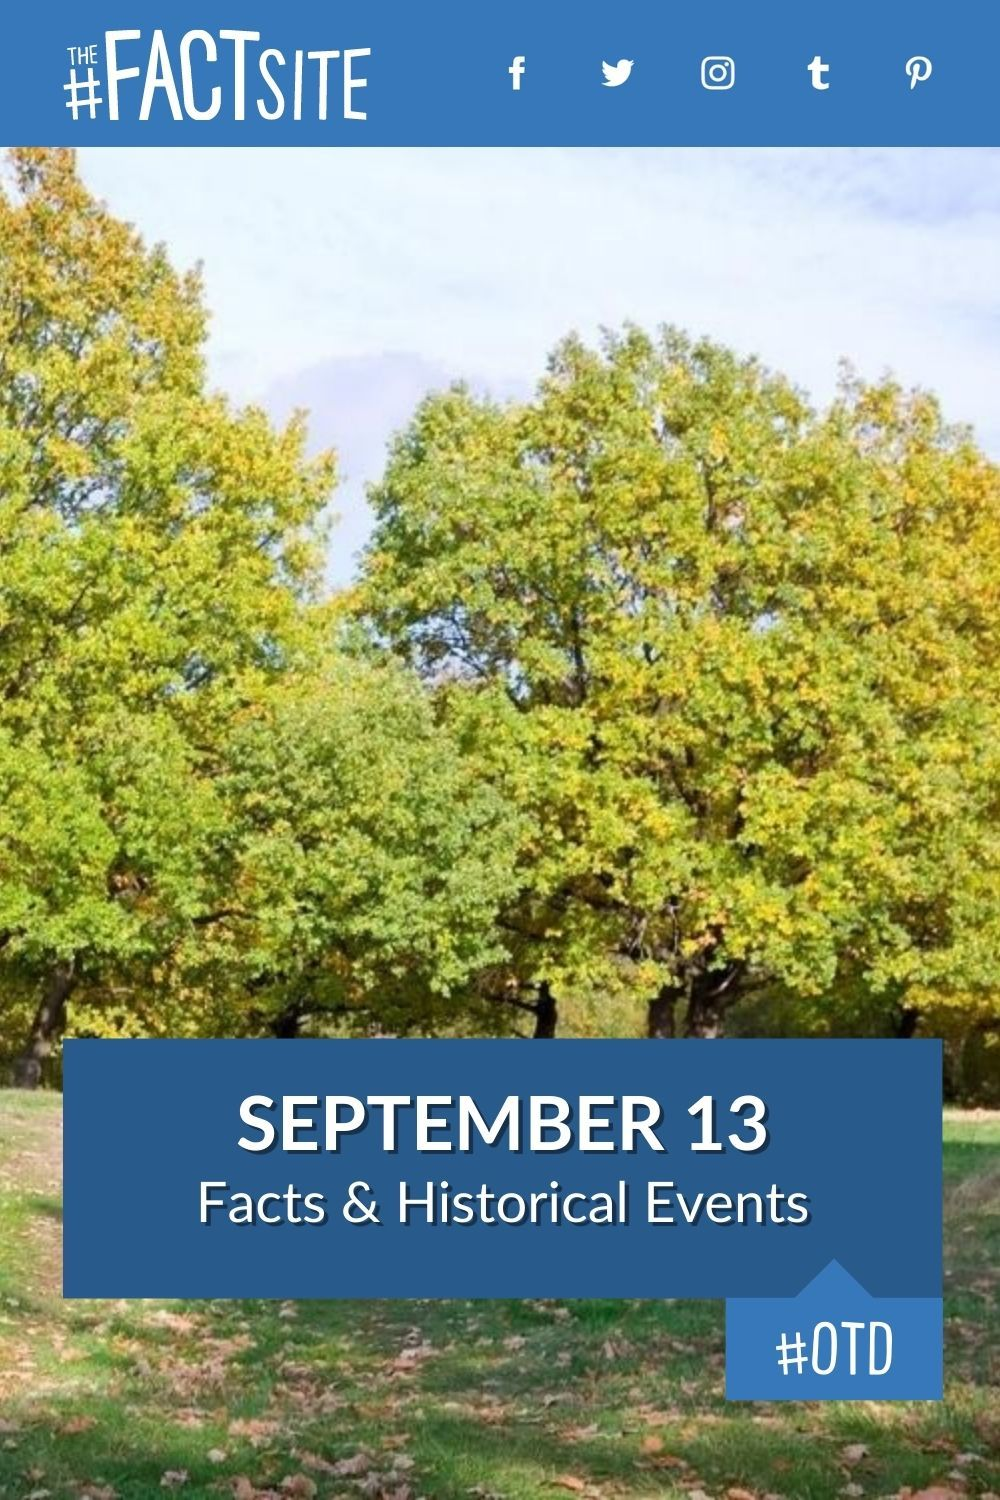 Facts & Historic Events That Happened on September 13